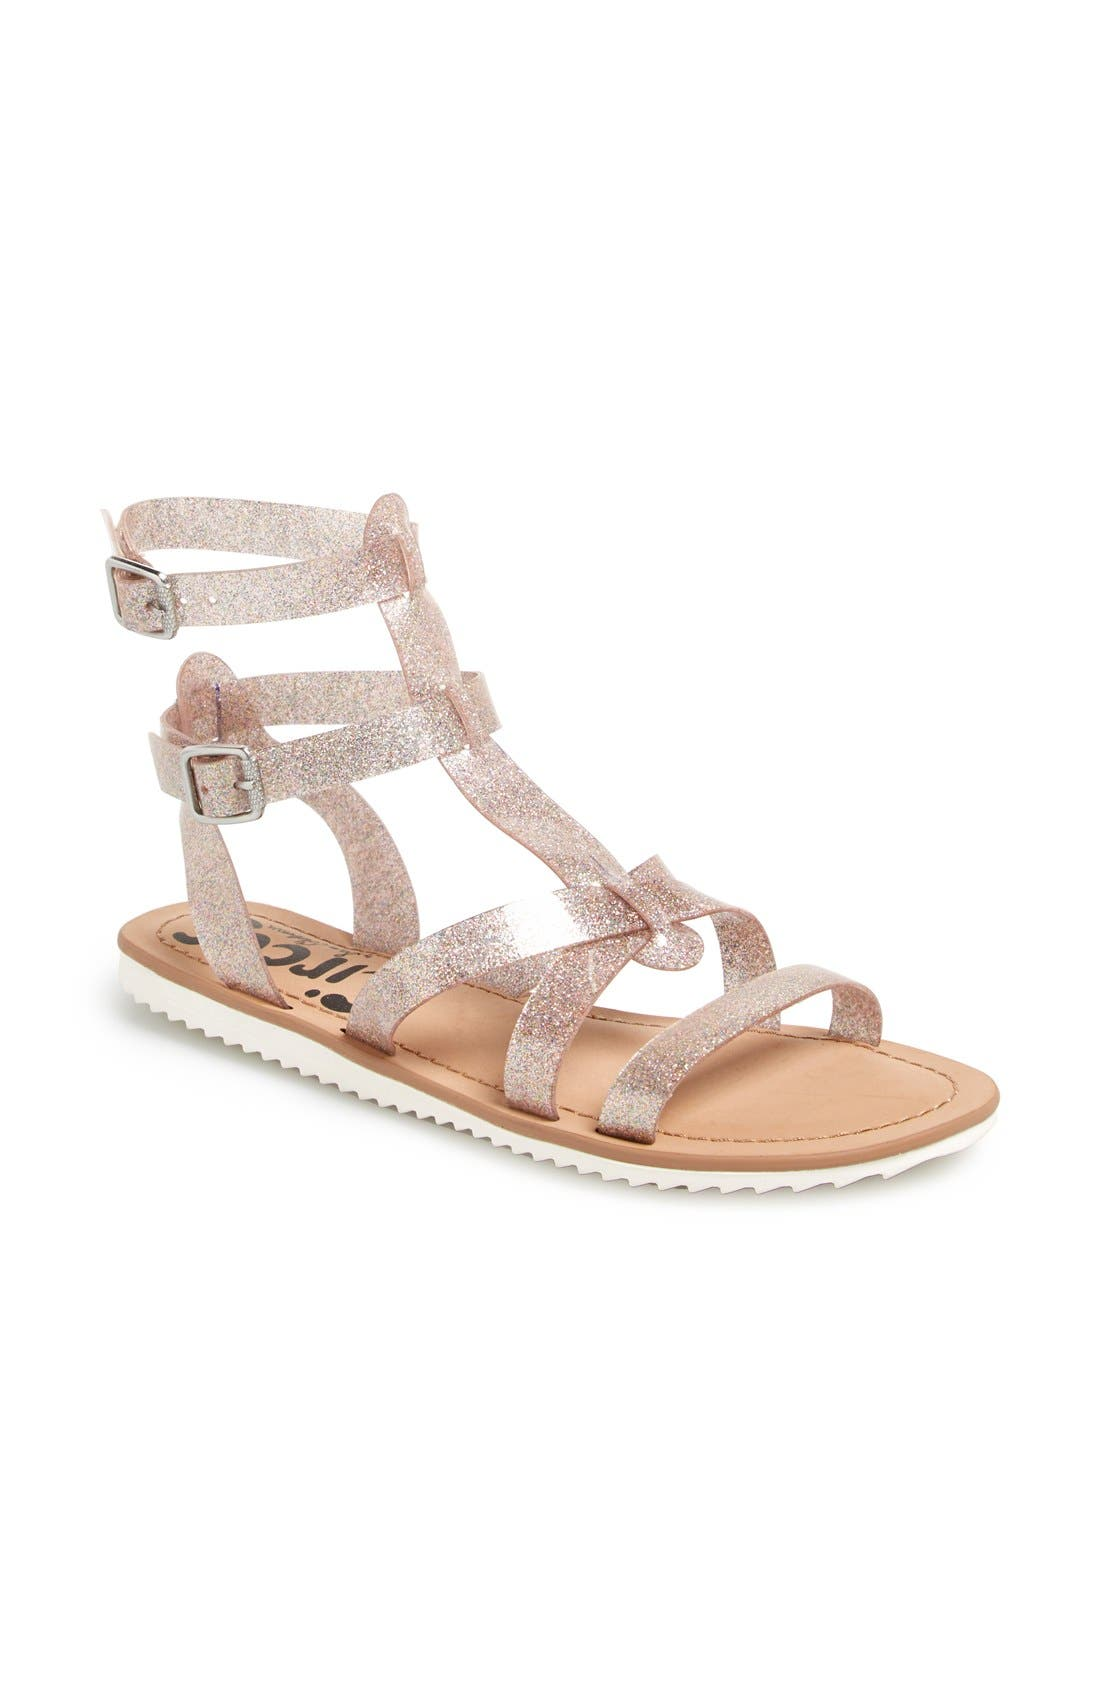 ,                             'Selma' Gladiator Sandal,                             Main thumbnail 17, color,                             220